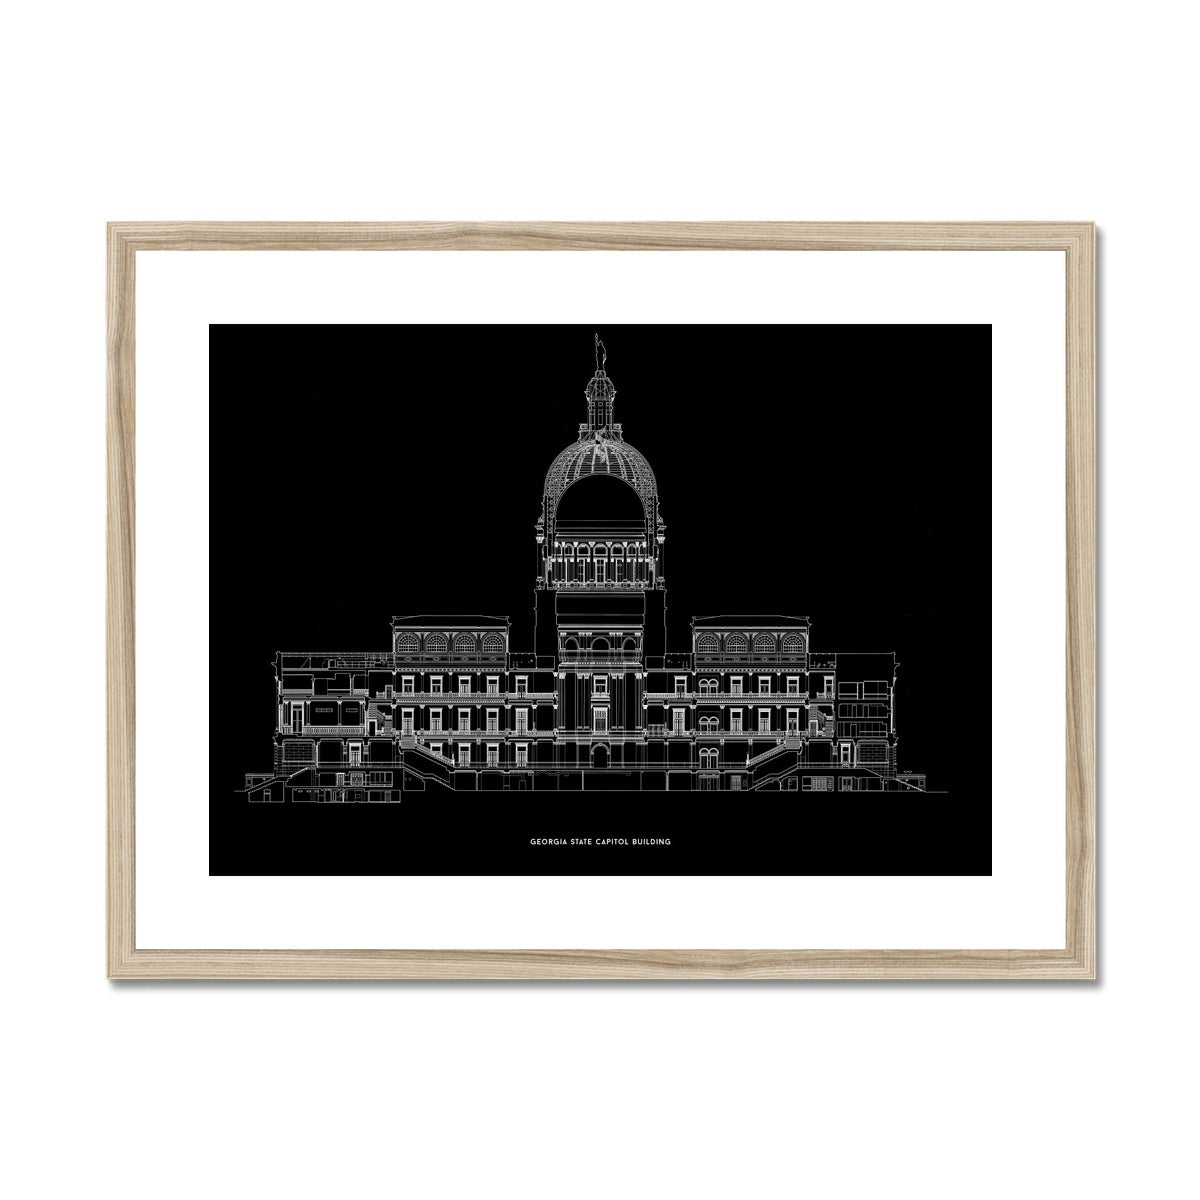 The Georgia State Capitol Building - West Elevation Cross Section - Black -  Framed & Mounted Print